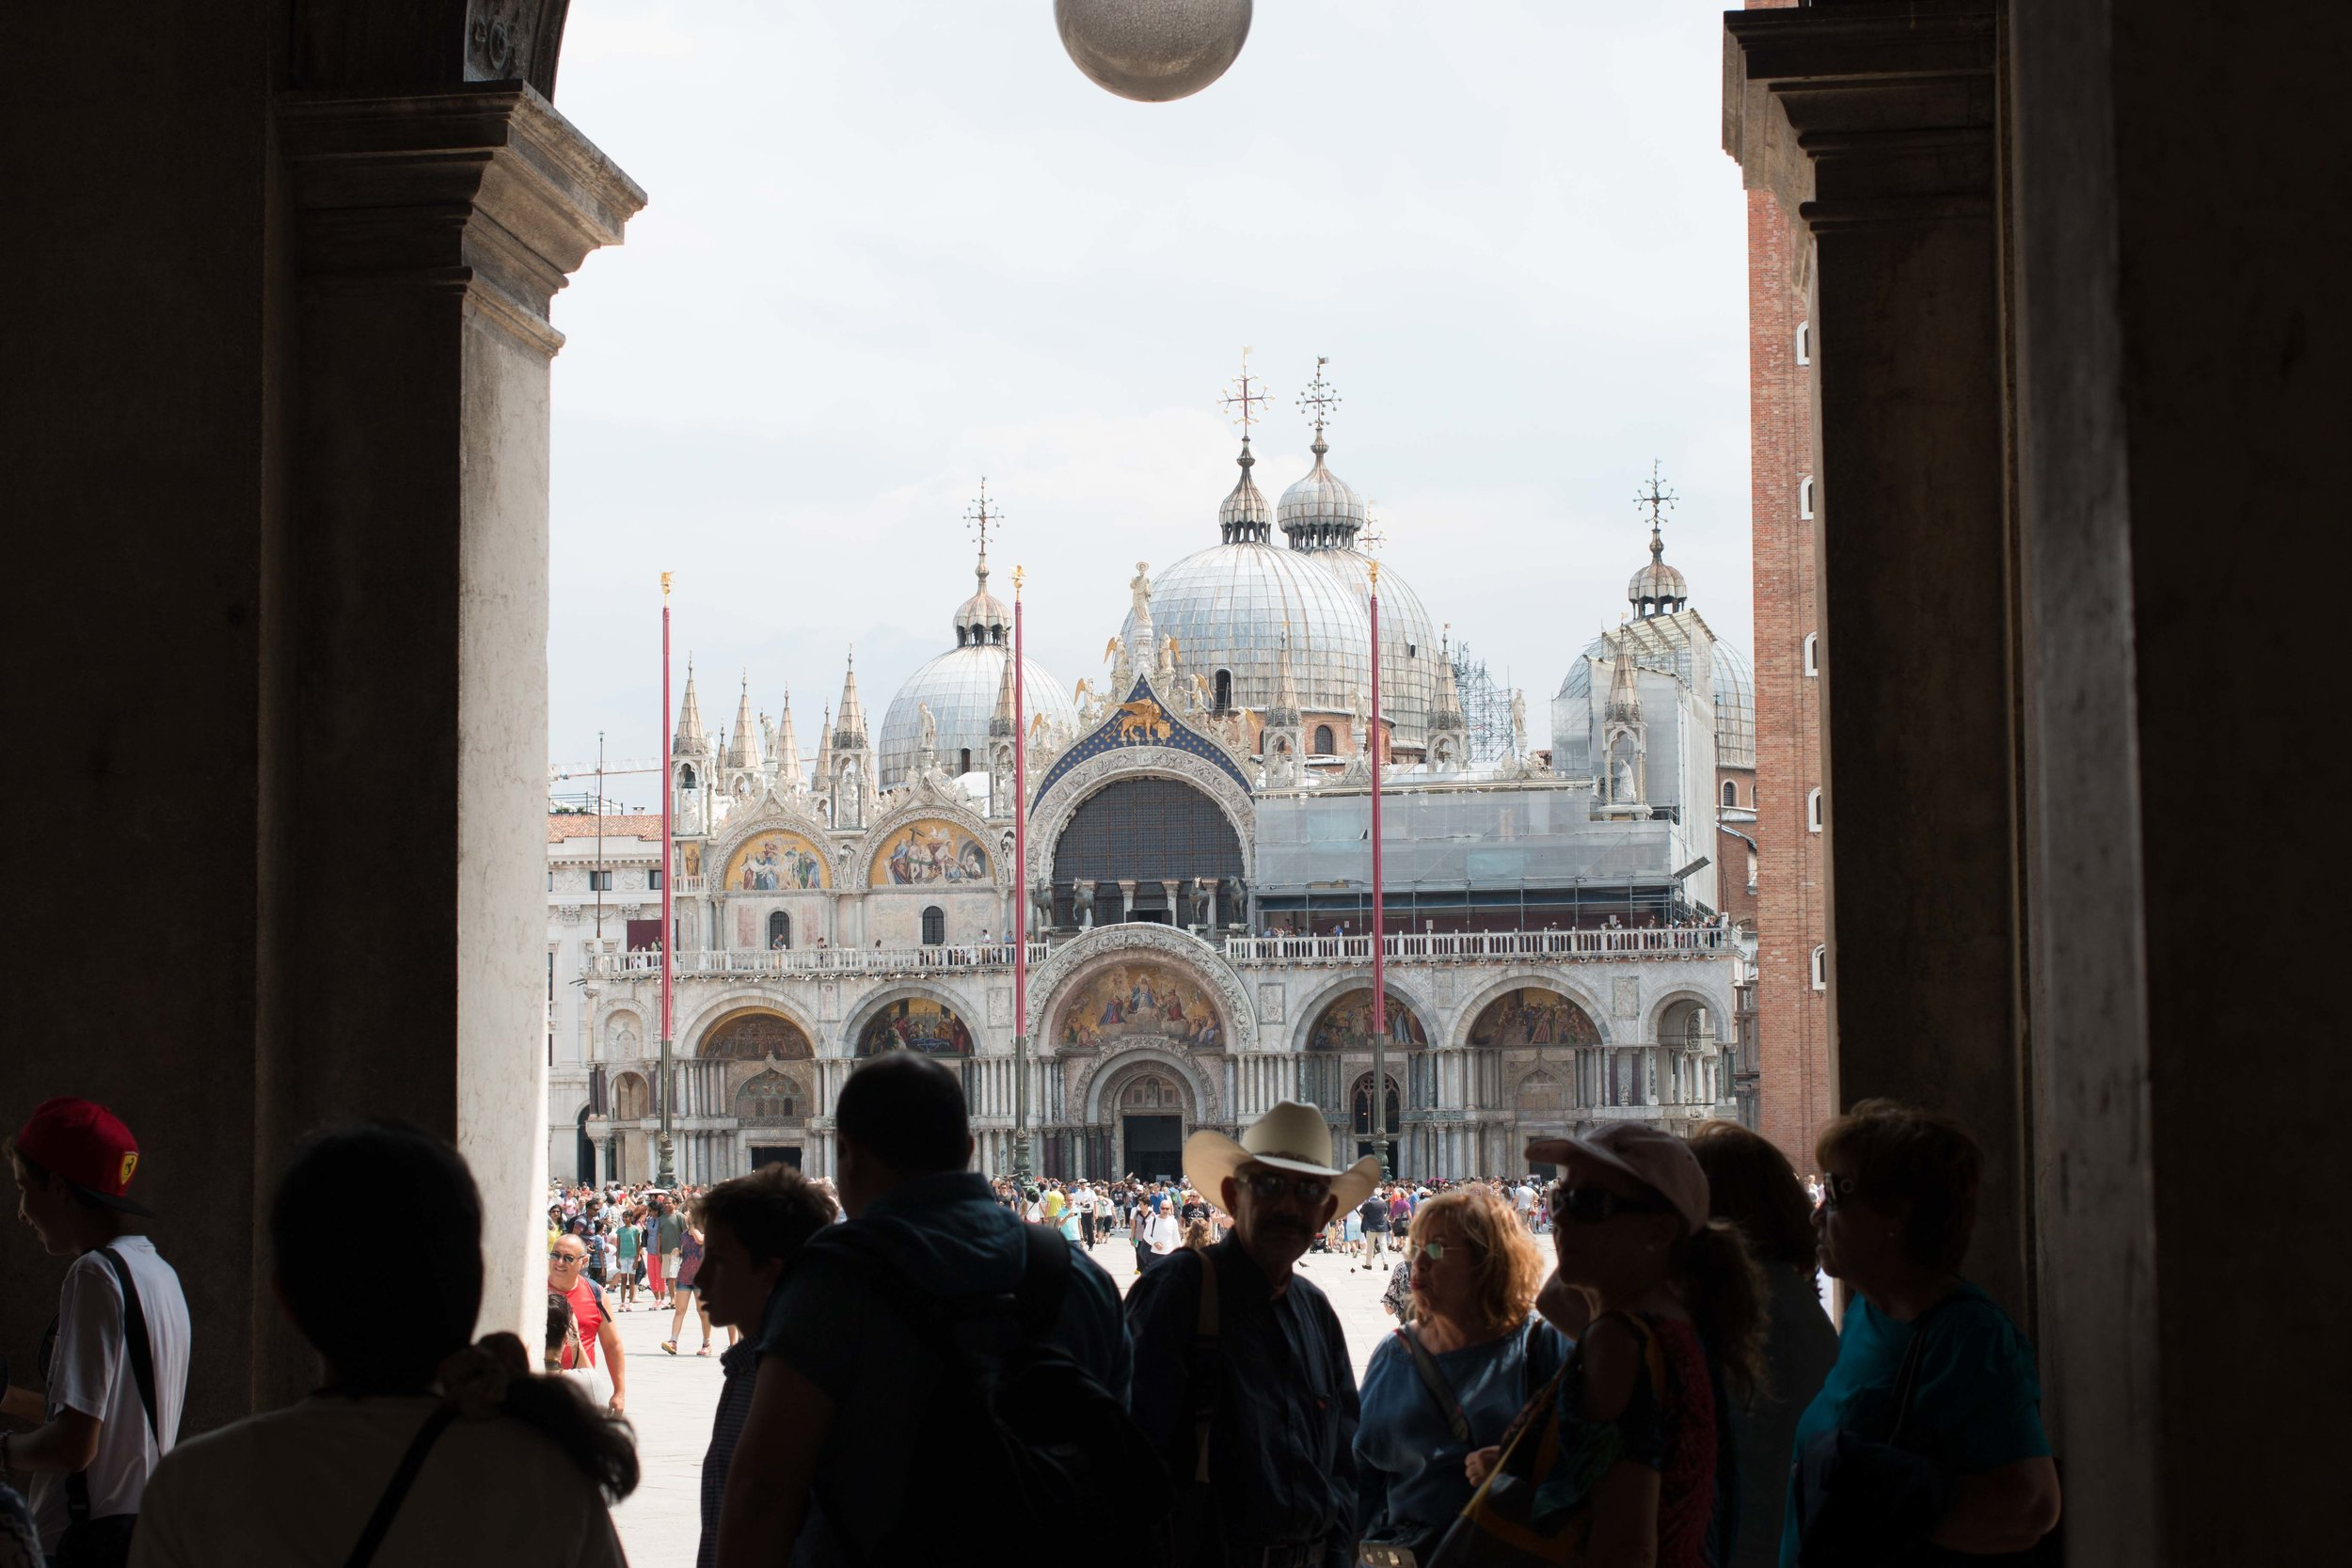 St. Mark's beyond the crowd